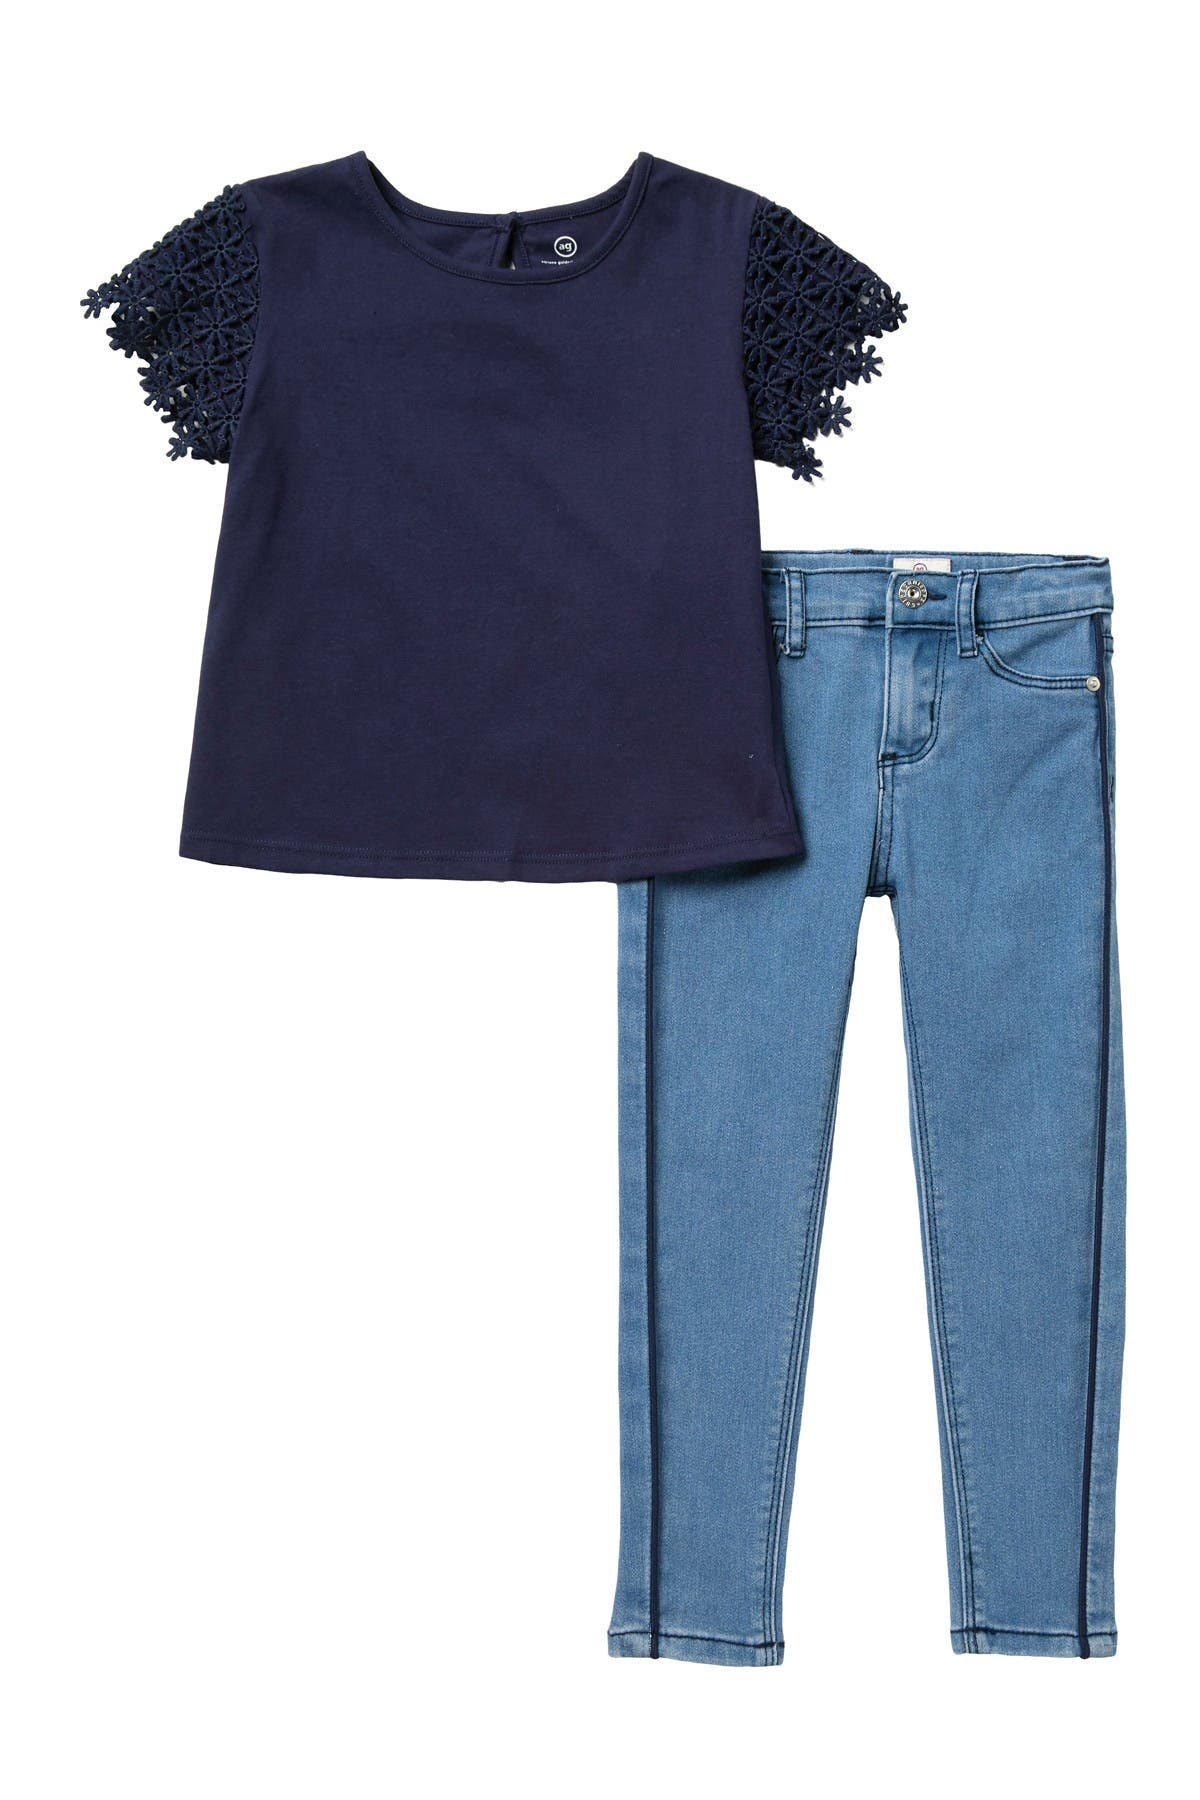 Image of AG Lace Sleeve Top & Jeans Set